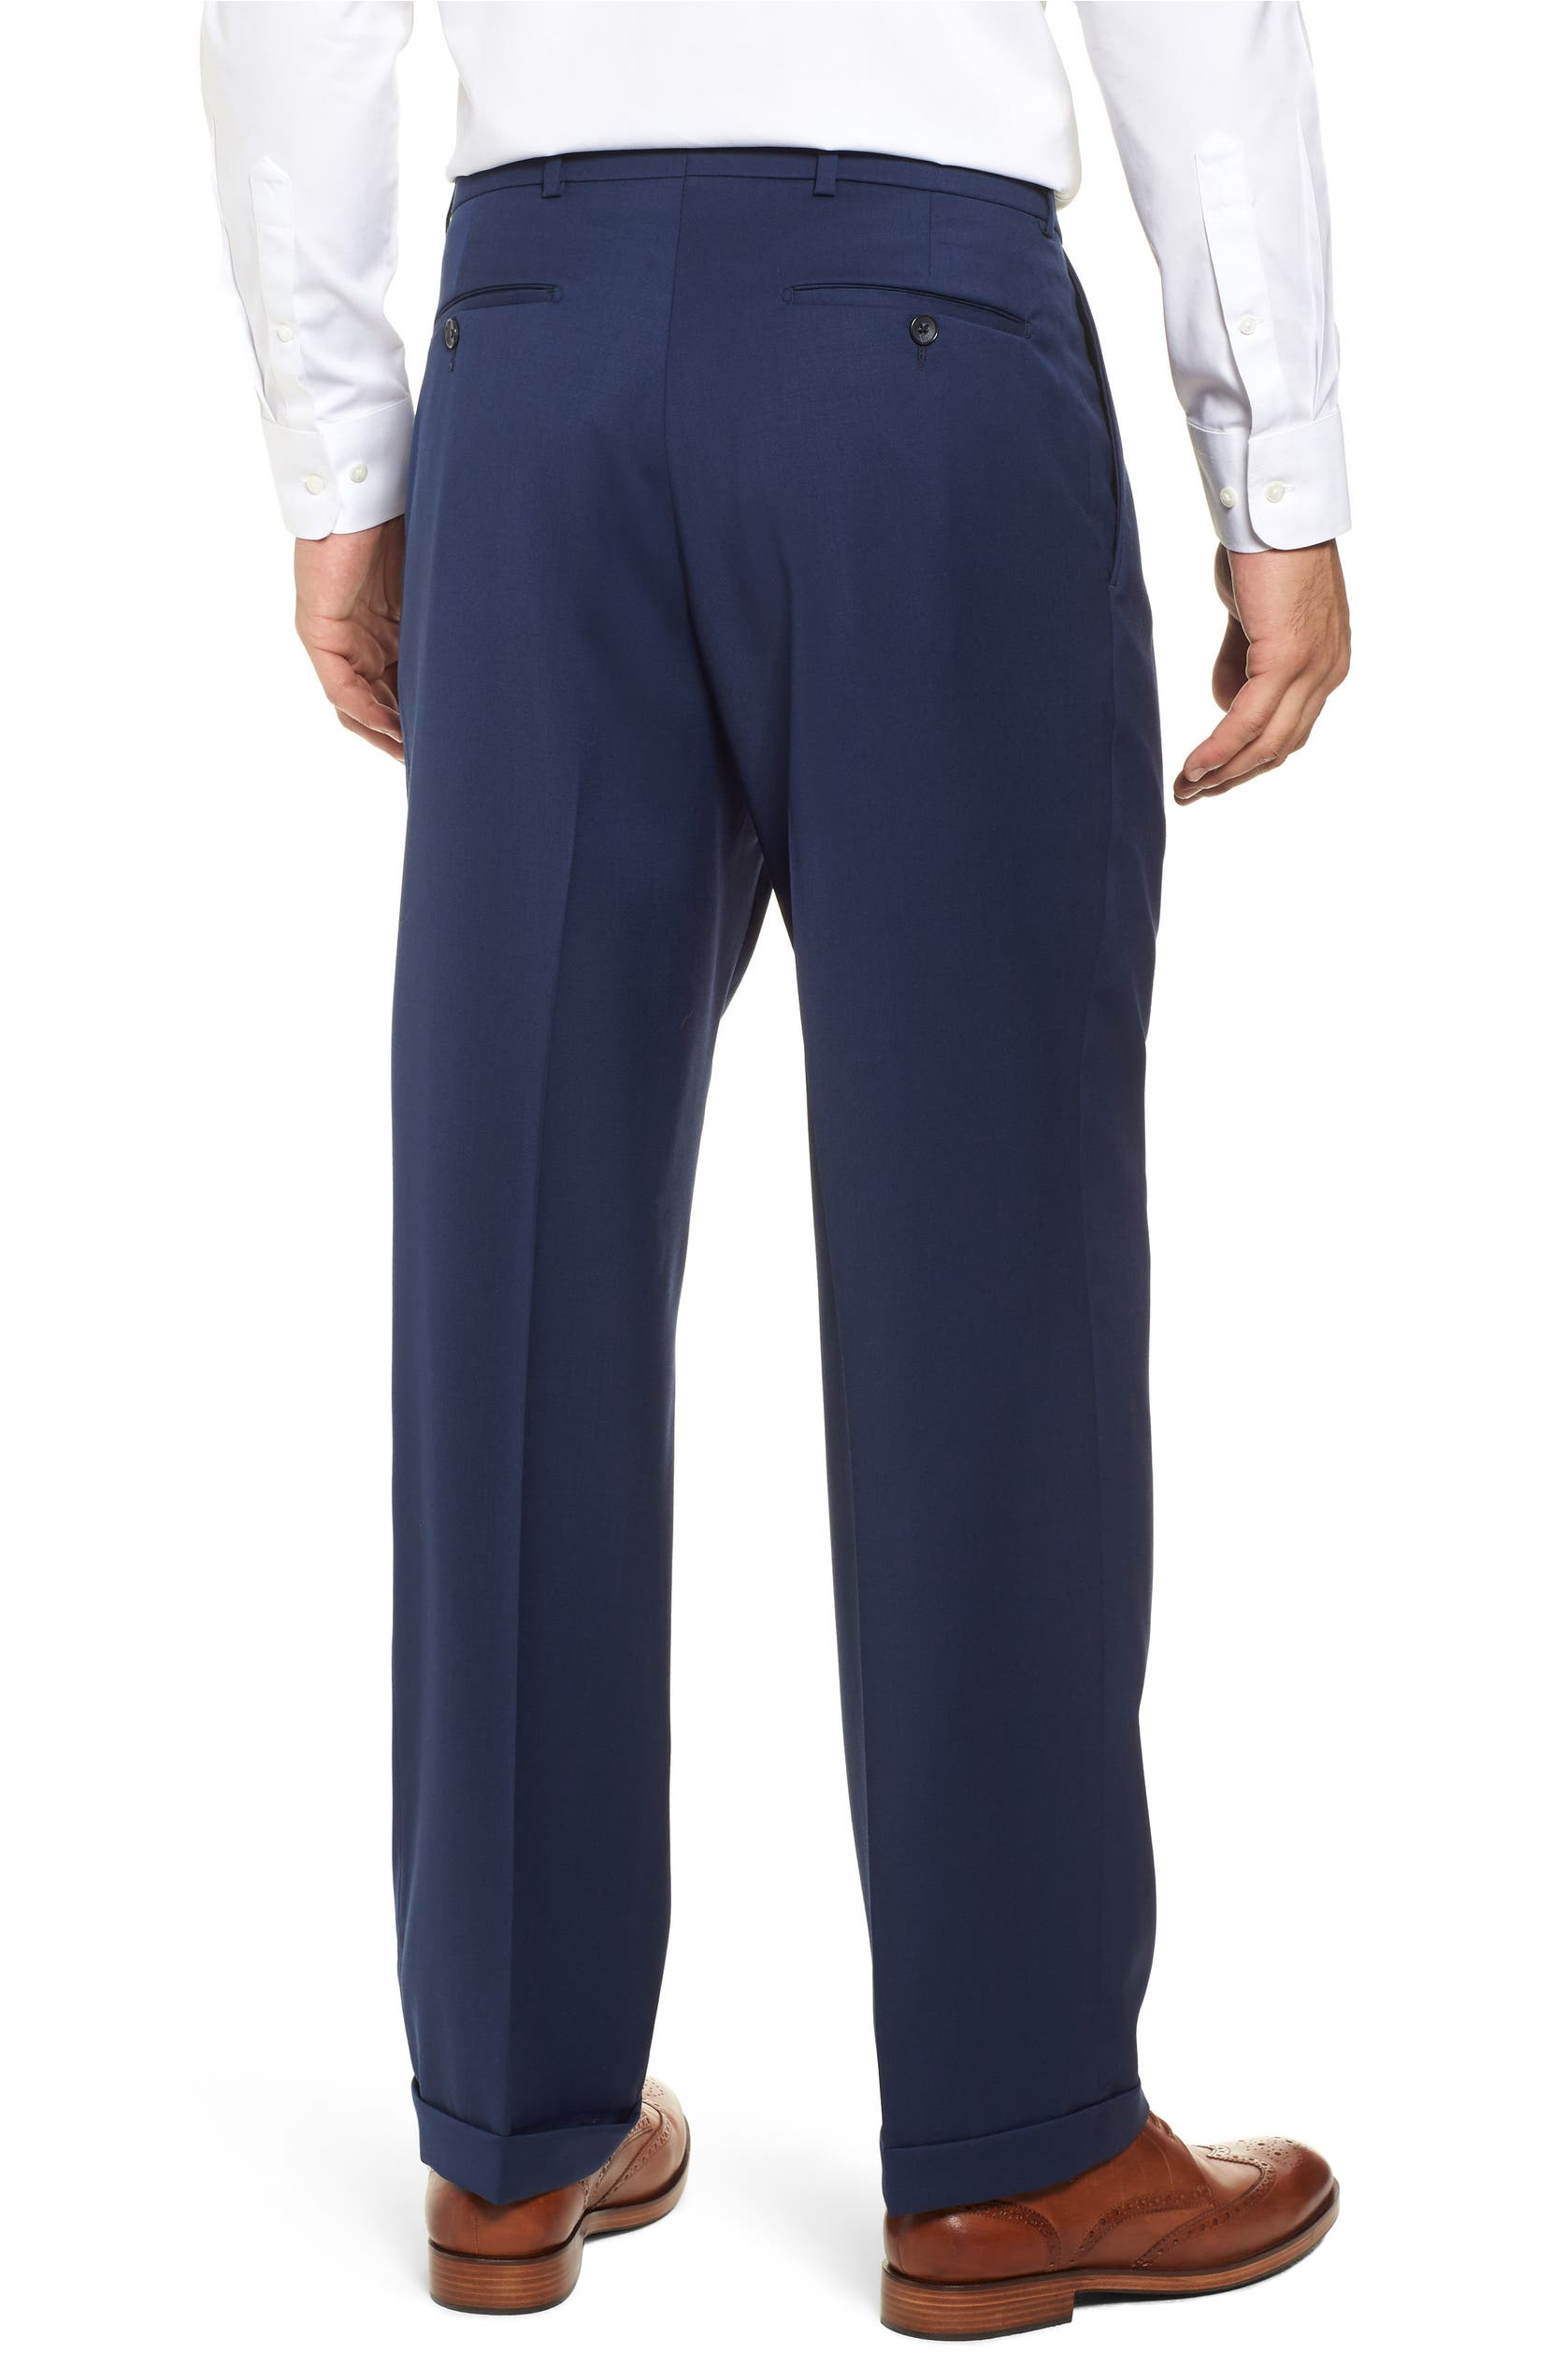 fee7eae2 Classic Fit Pleated Solid Wool Dress Pants